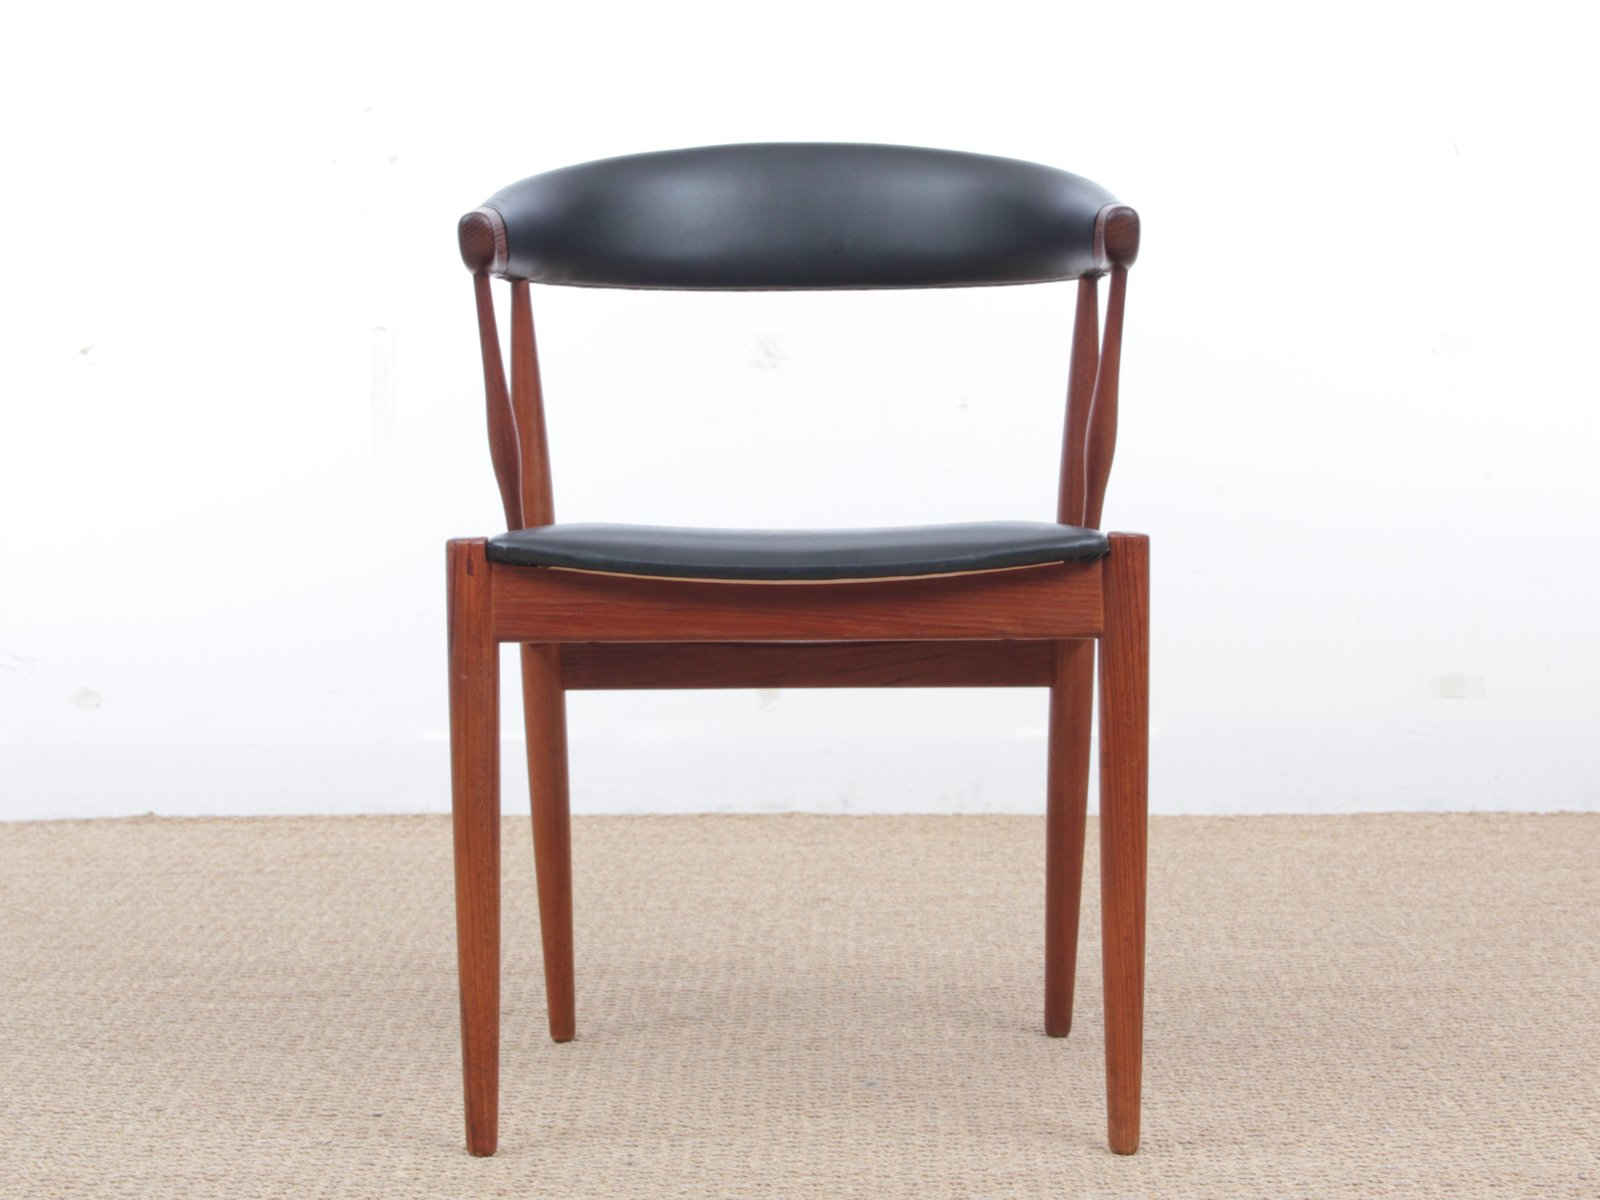 vintage scandinavian armchair in teak and skai from brodrene andersen mobelsnedkeri 1